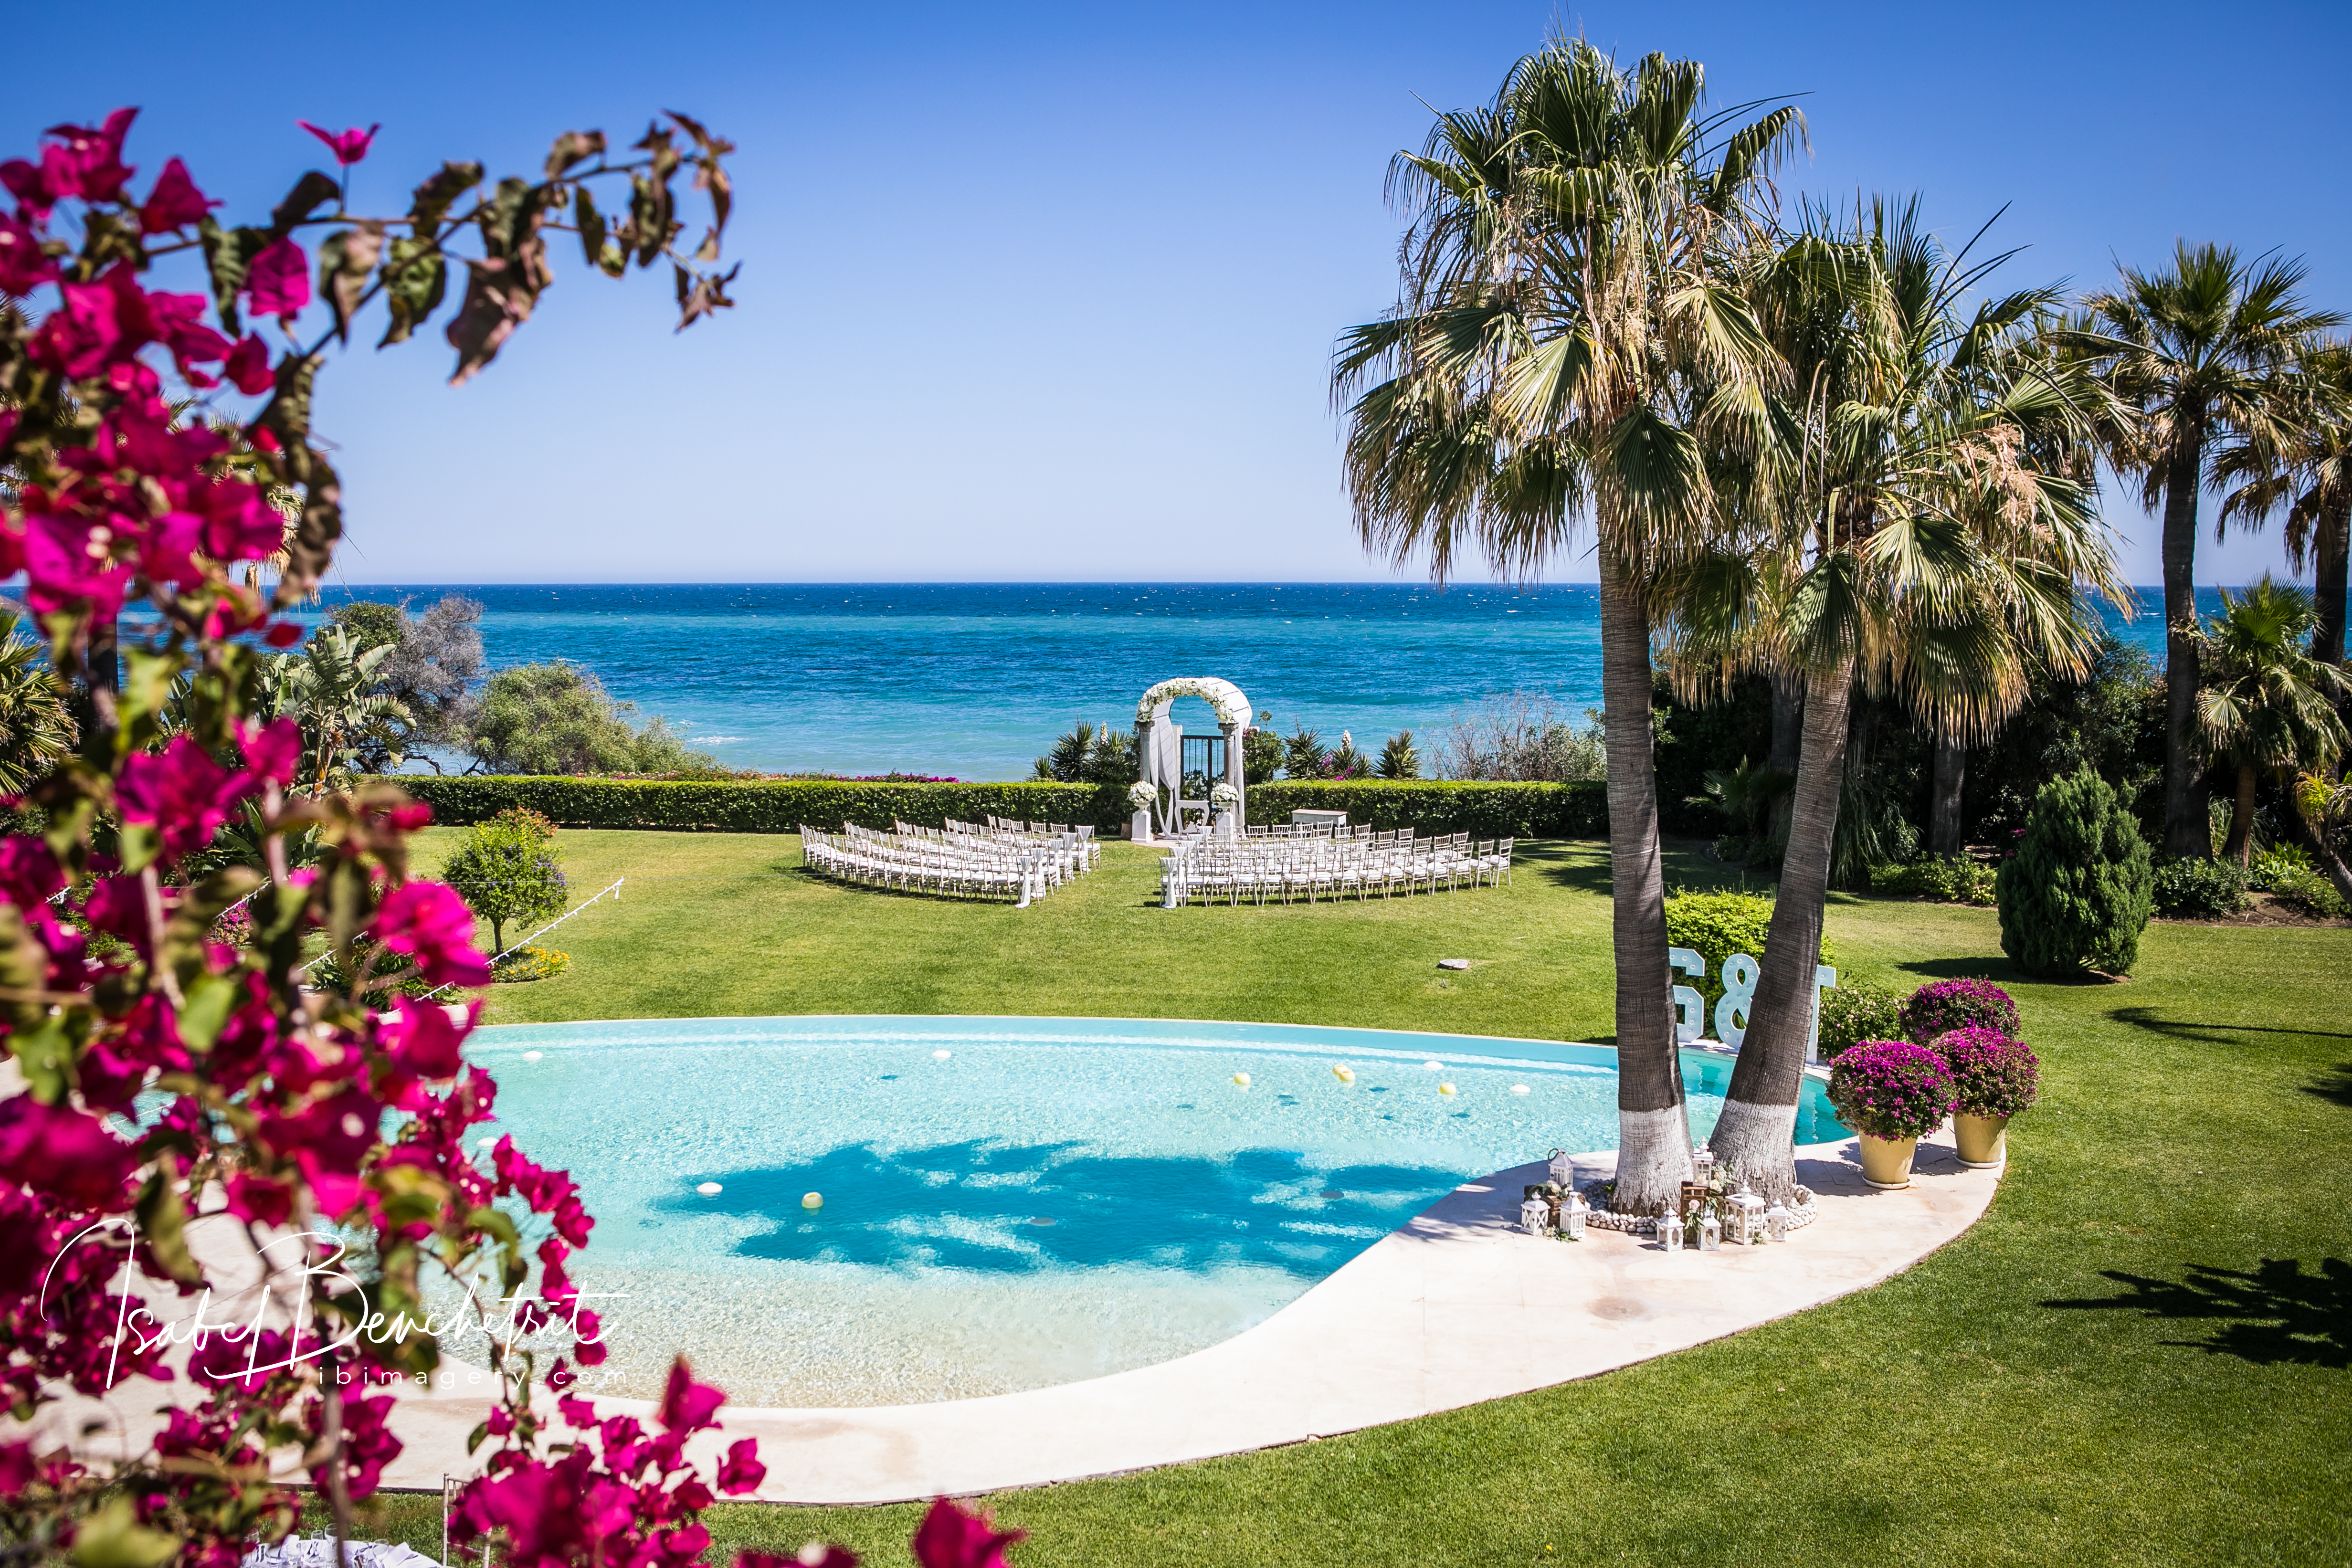 Villa gardens, pool, ceremony set up and stunning sea view